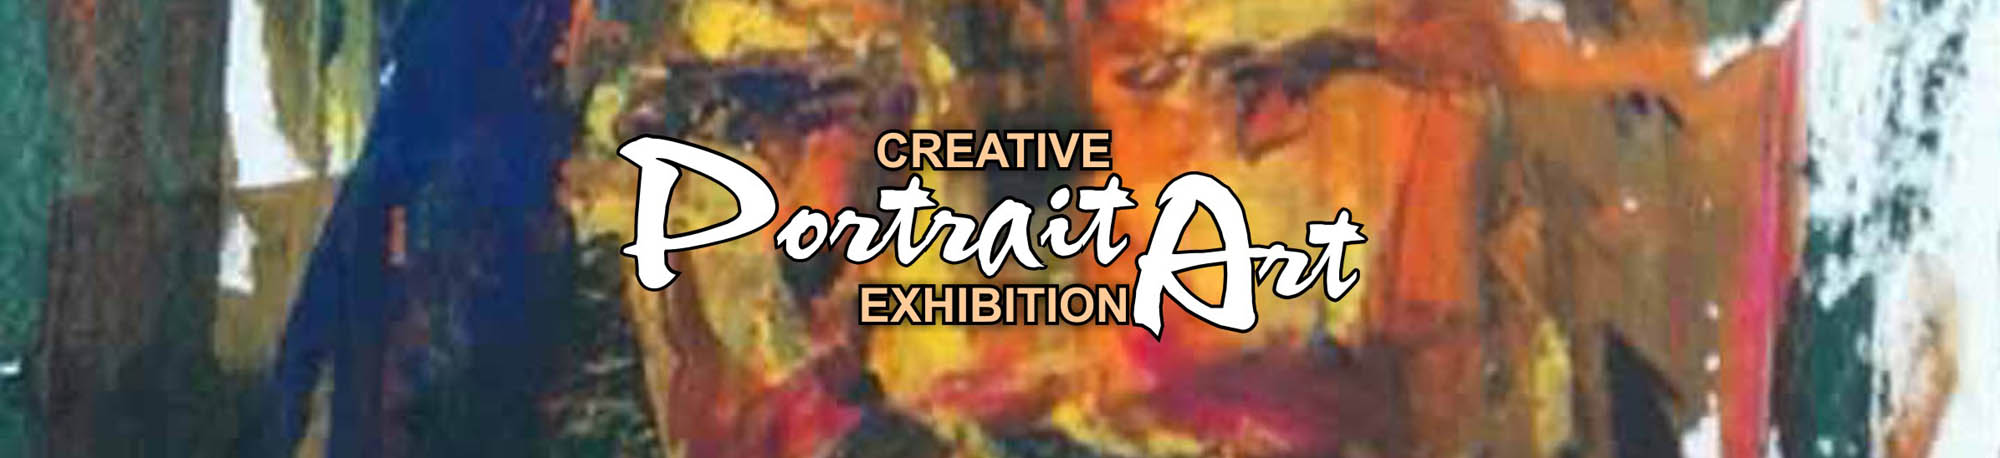 Creative Portrait Art Exhibition-2016